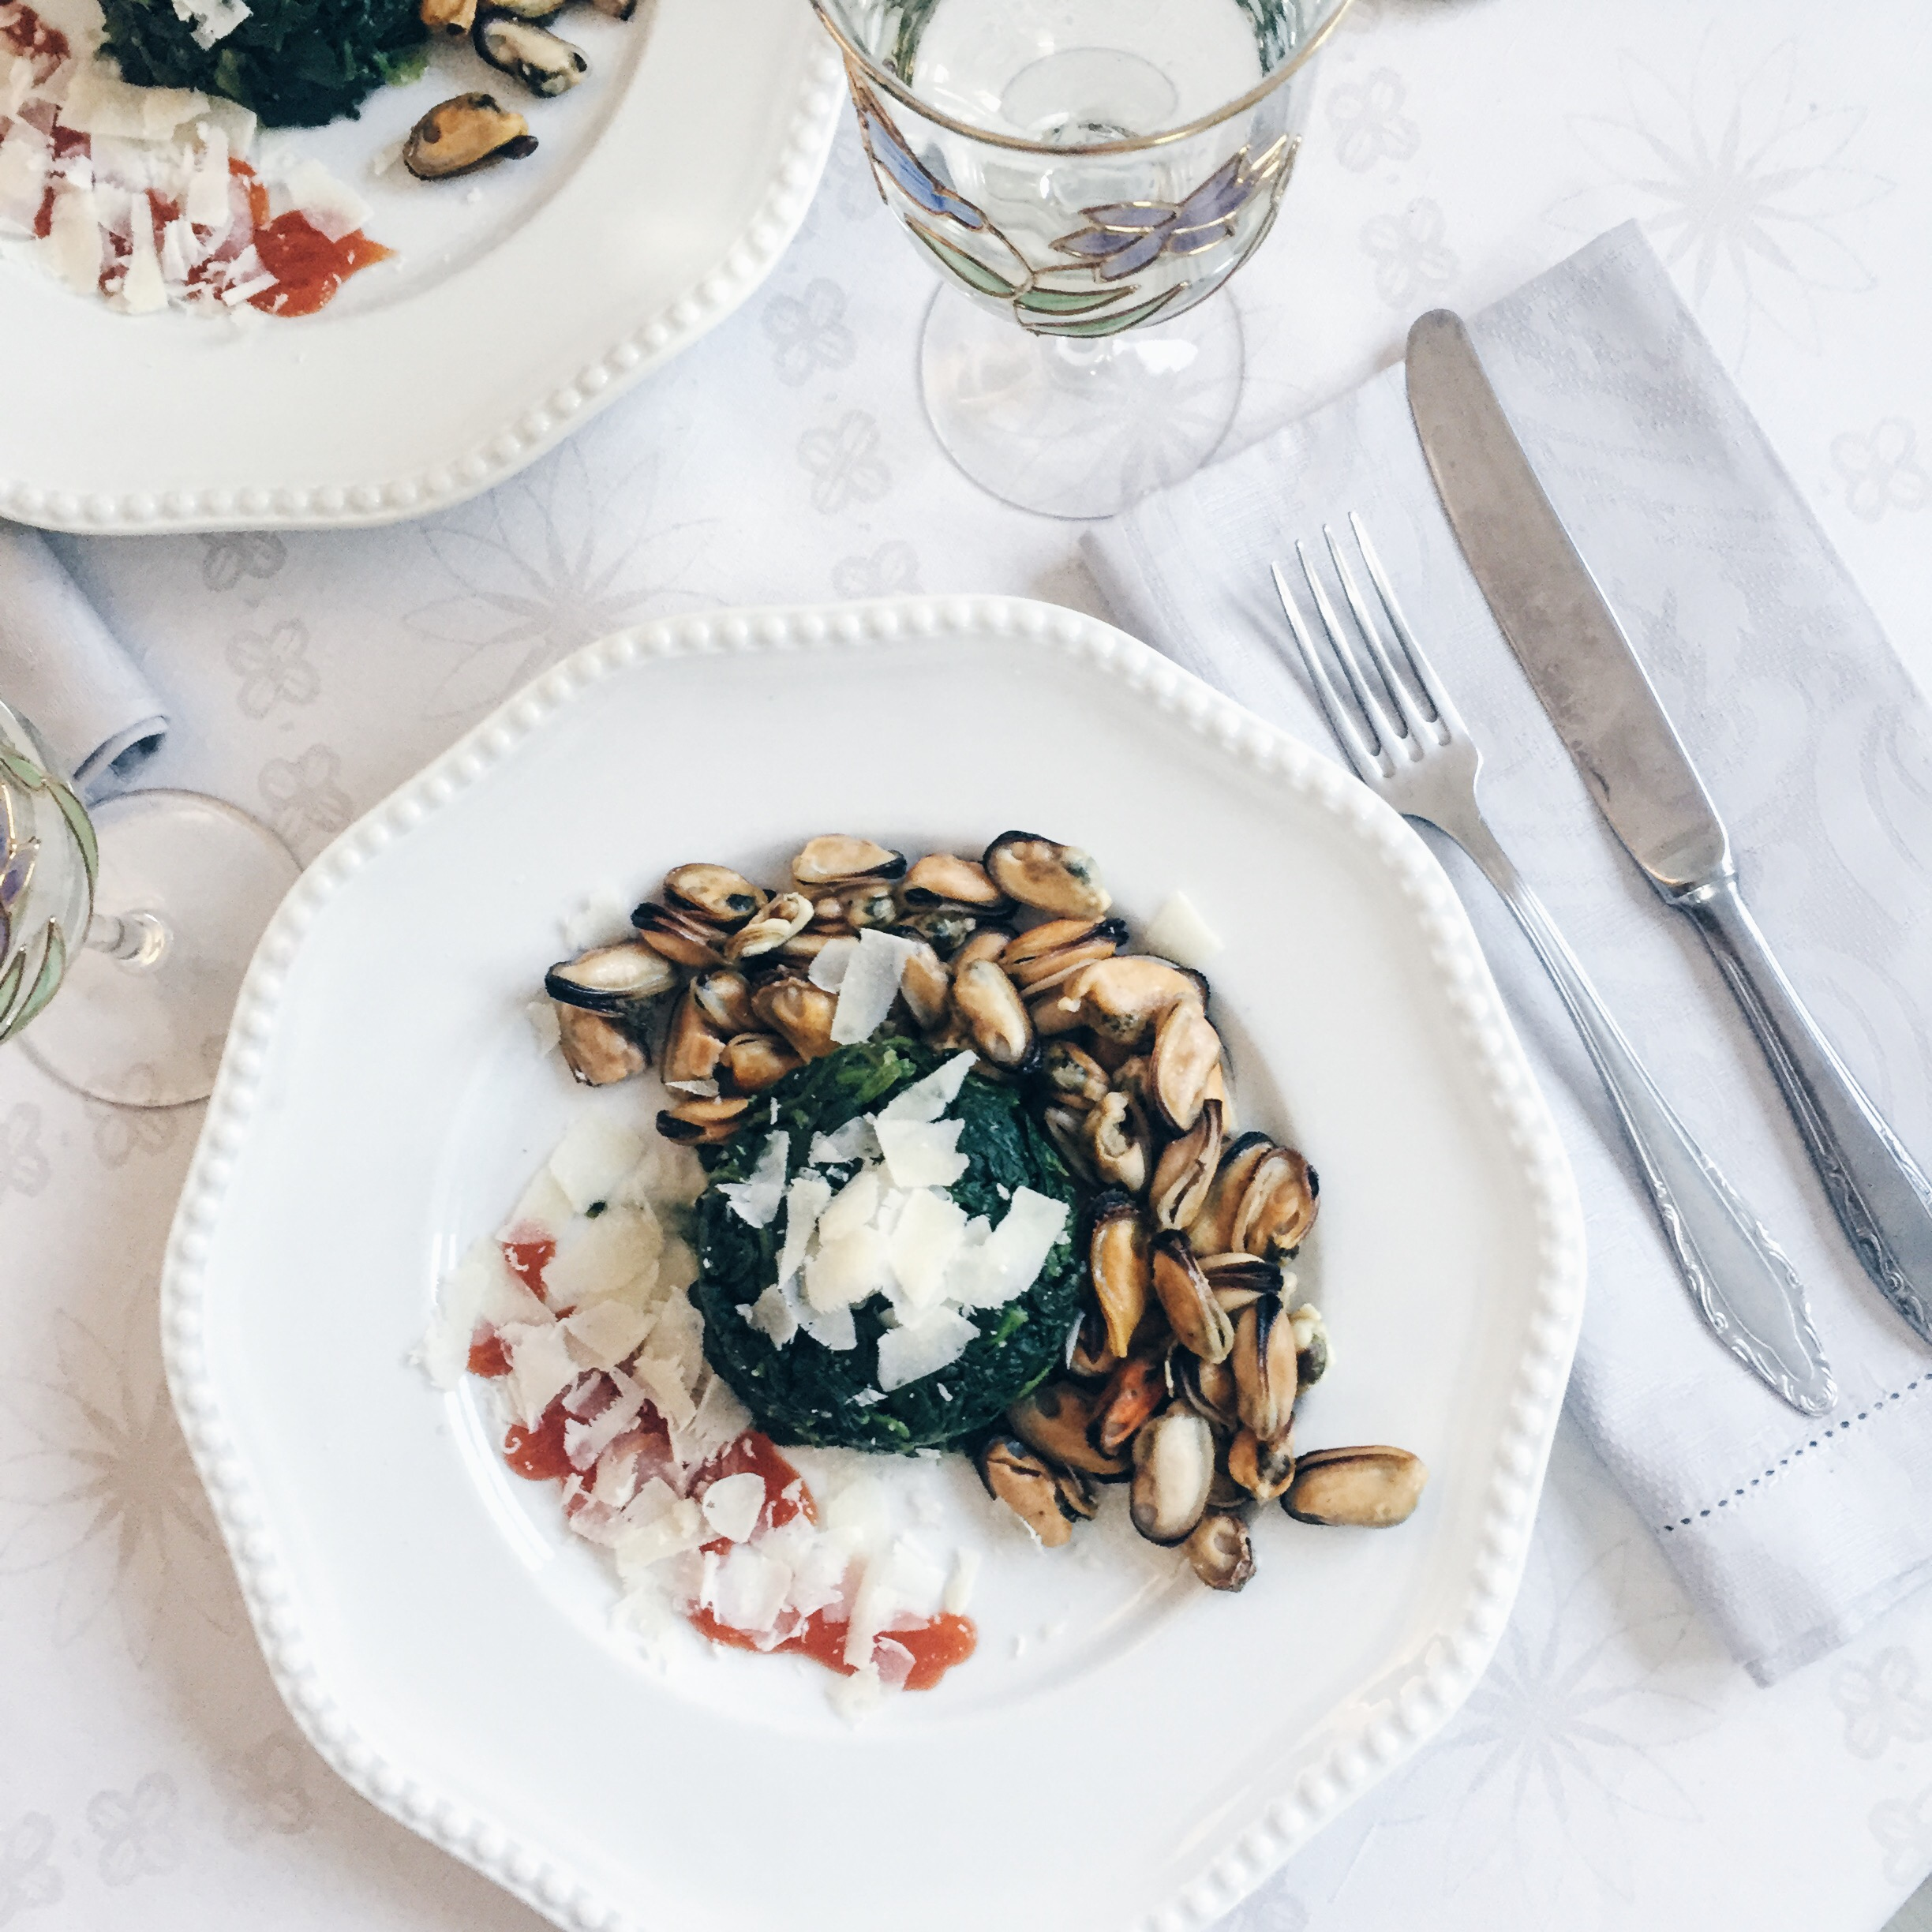 @pfairytale Mussels with Spinach Sautée and Hot Chilli Sauce